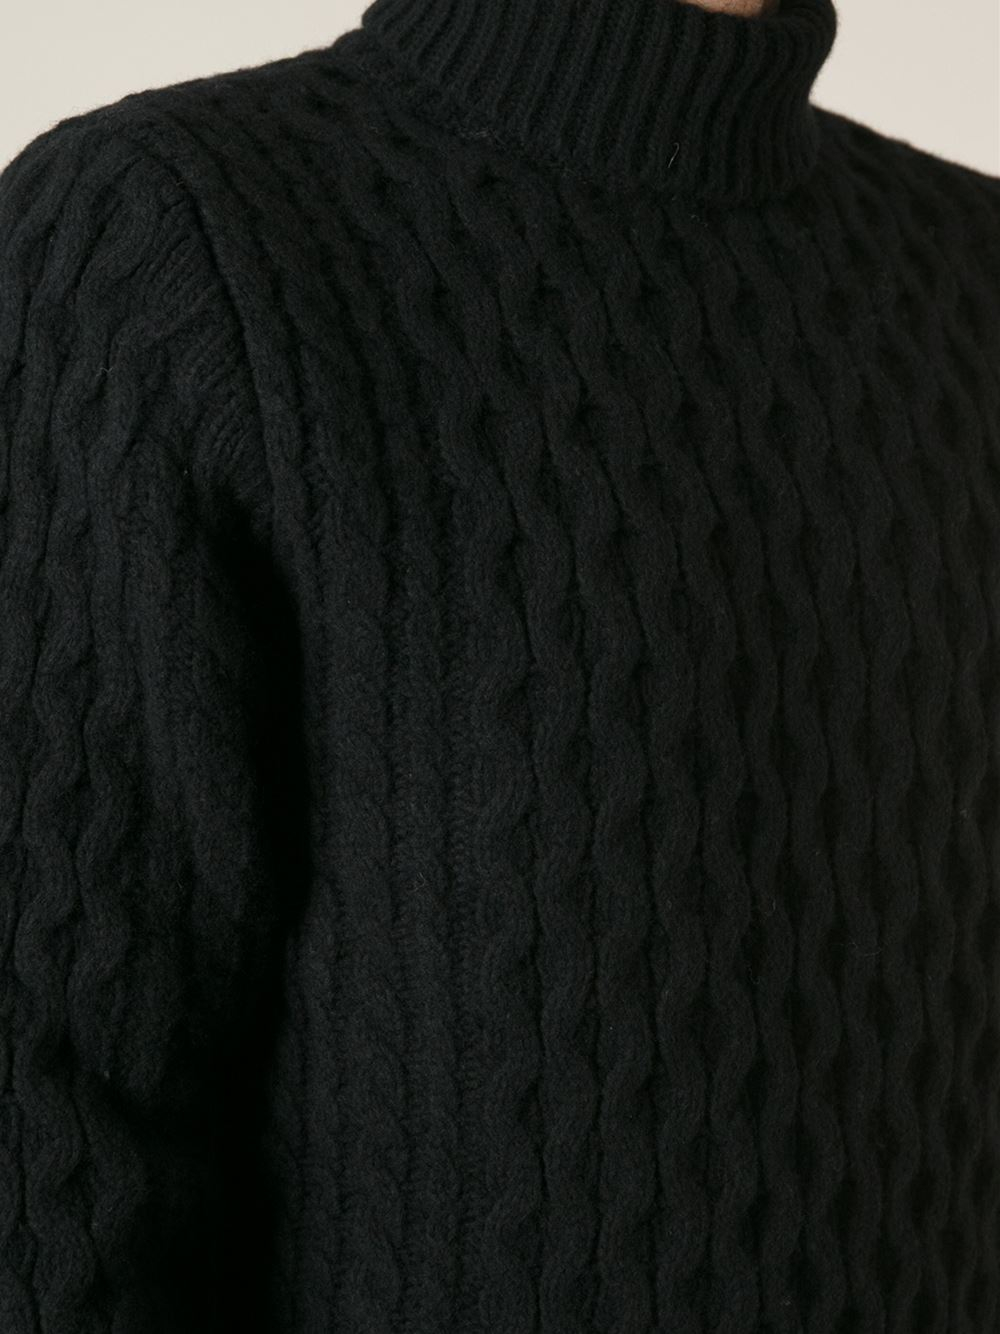 Diesel Cable Knit Turtleneck Sweater in Black for Men | Lyst